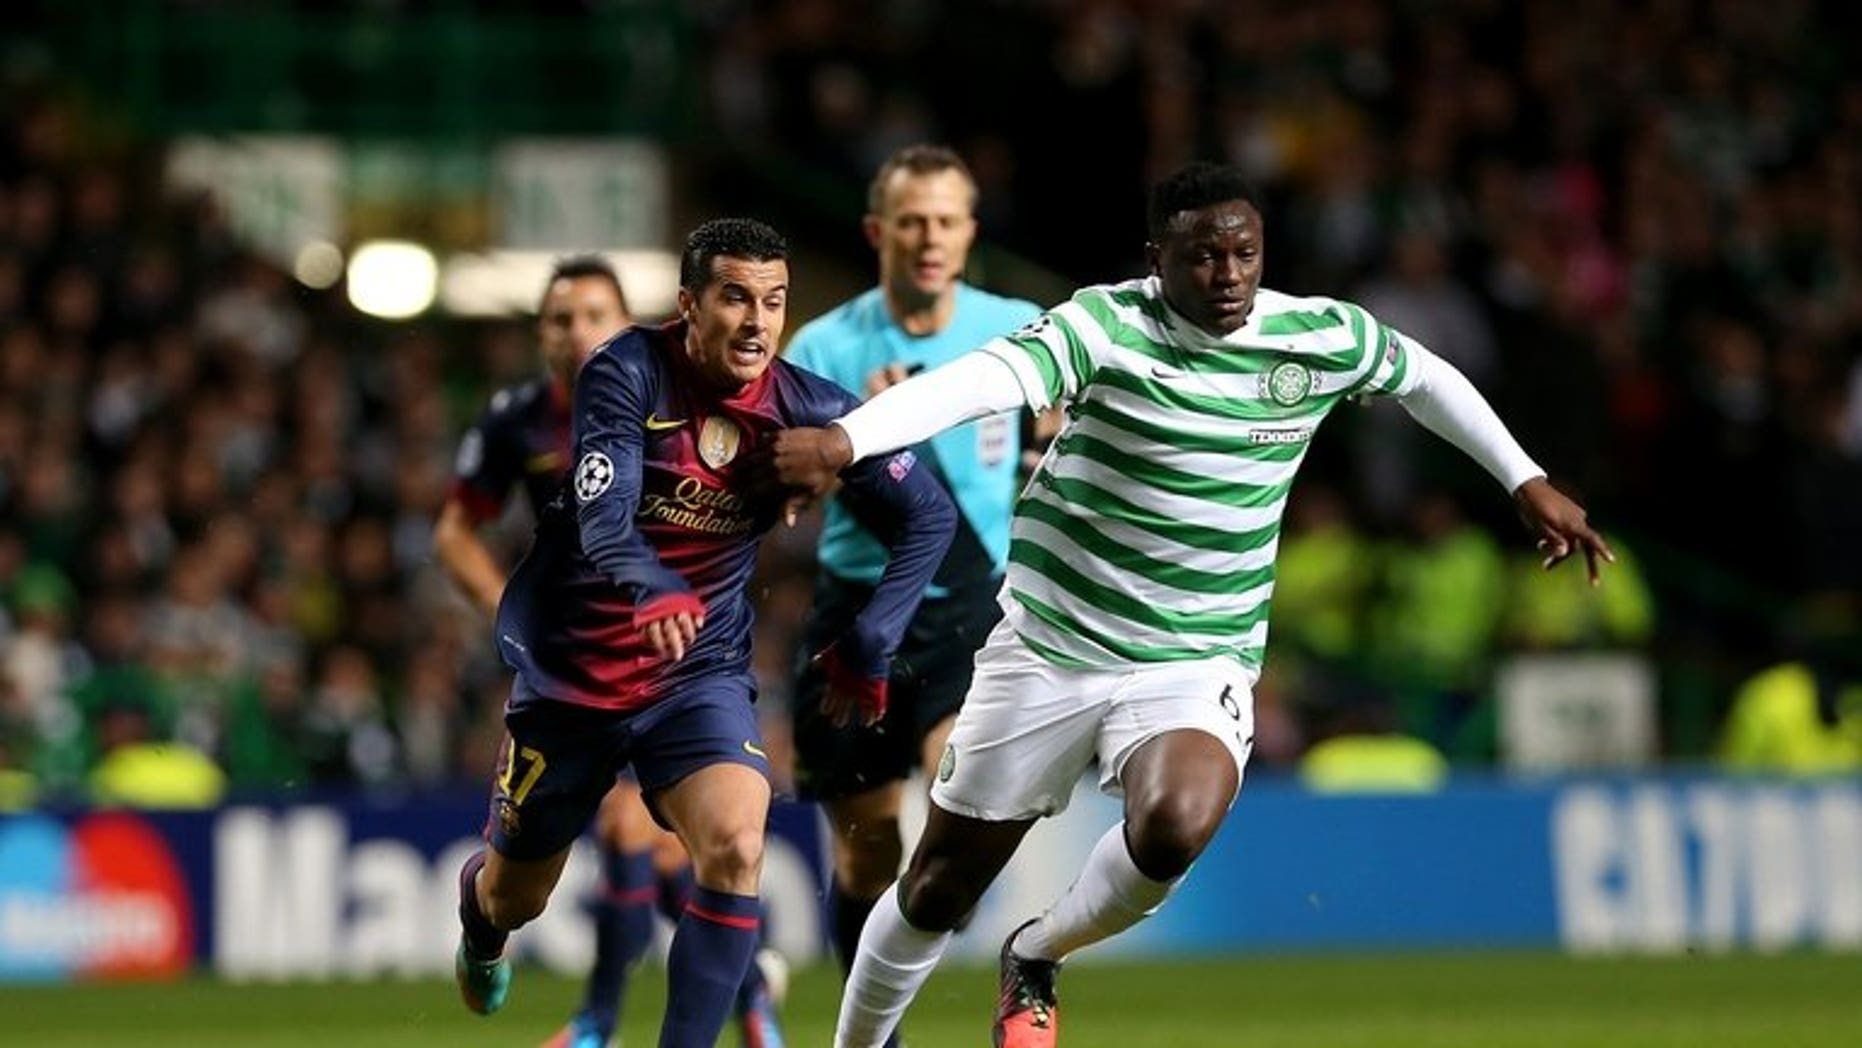 Victor Wanyama fends off Barcelona's Pedro Rodriguez in a Champions League game in Glasgow last November. Kenyans on Friday hailed national football team skipper Victor Wanyama after his move from Scottish champions Celtic to Southampton in the English Premier League.